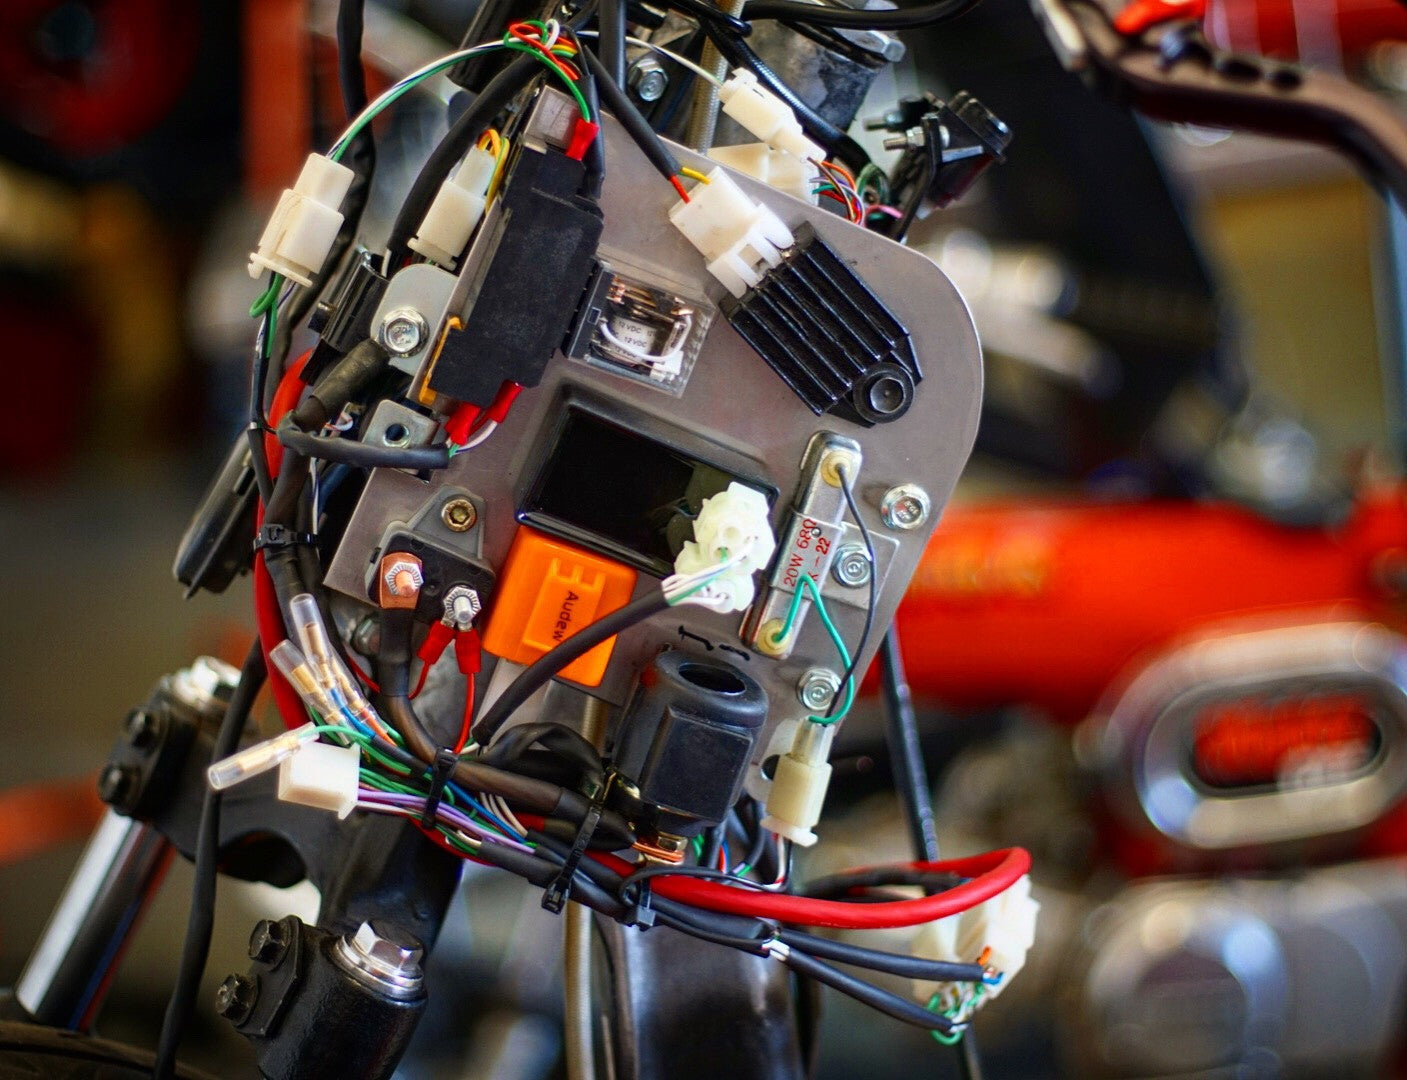 Honda Ruckus GY6 complete wiring harness – Rolling WrenchRolling Wrench